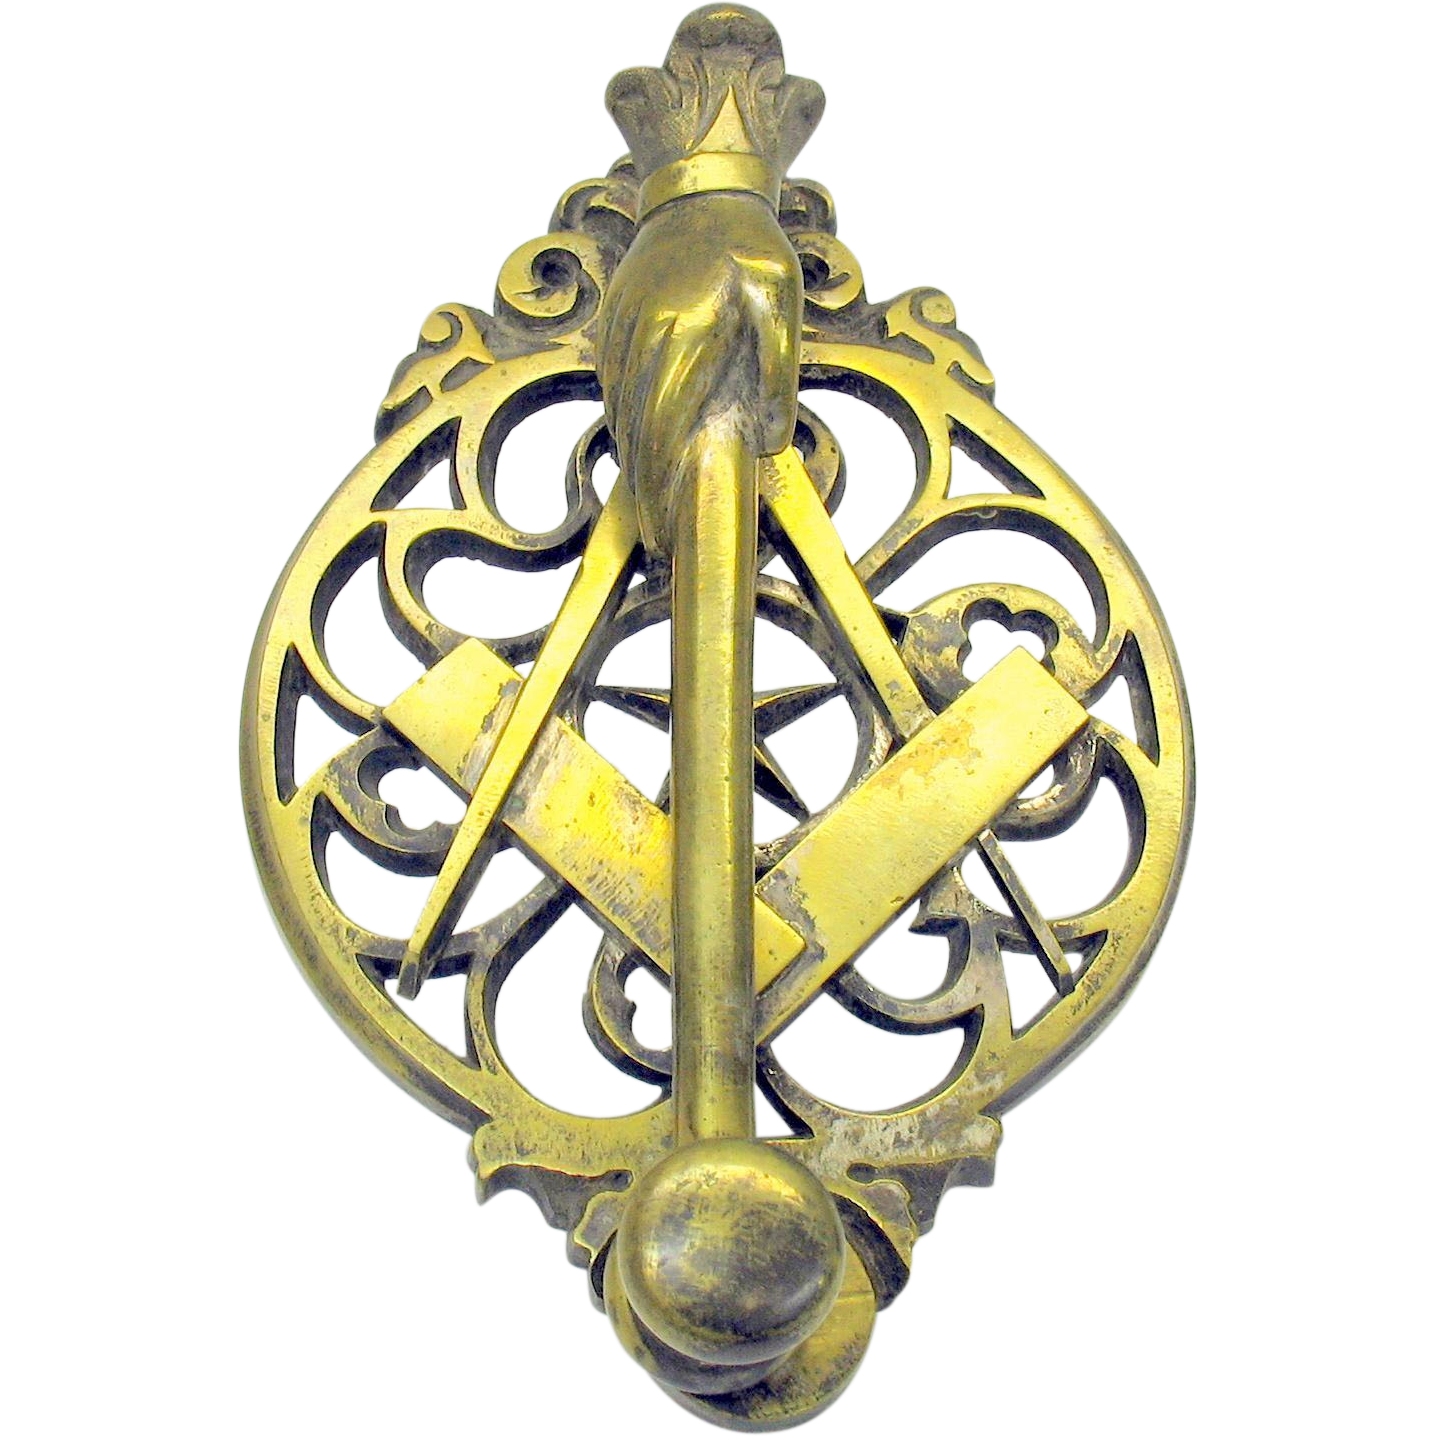 Antique bronze figural masonic door knocker from rubylane sold on ruby lane - Antique bronze door knocker ...